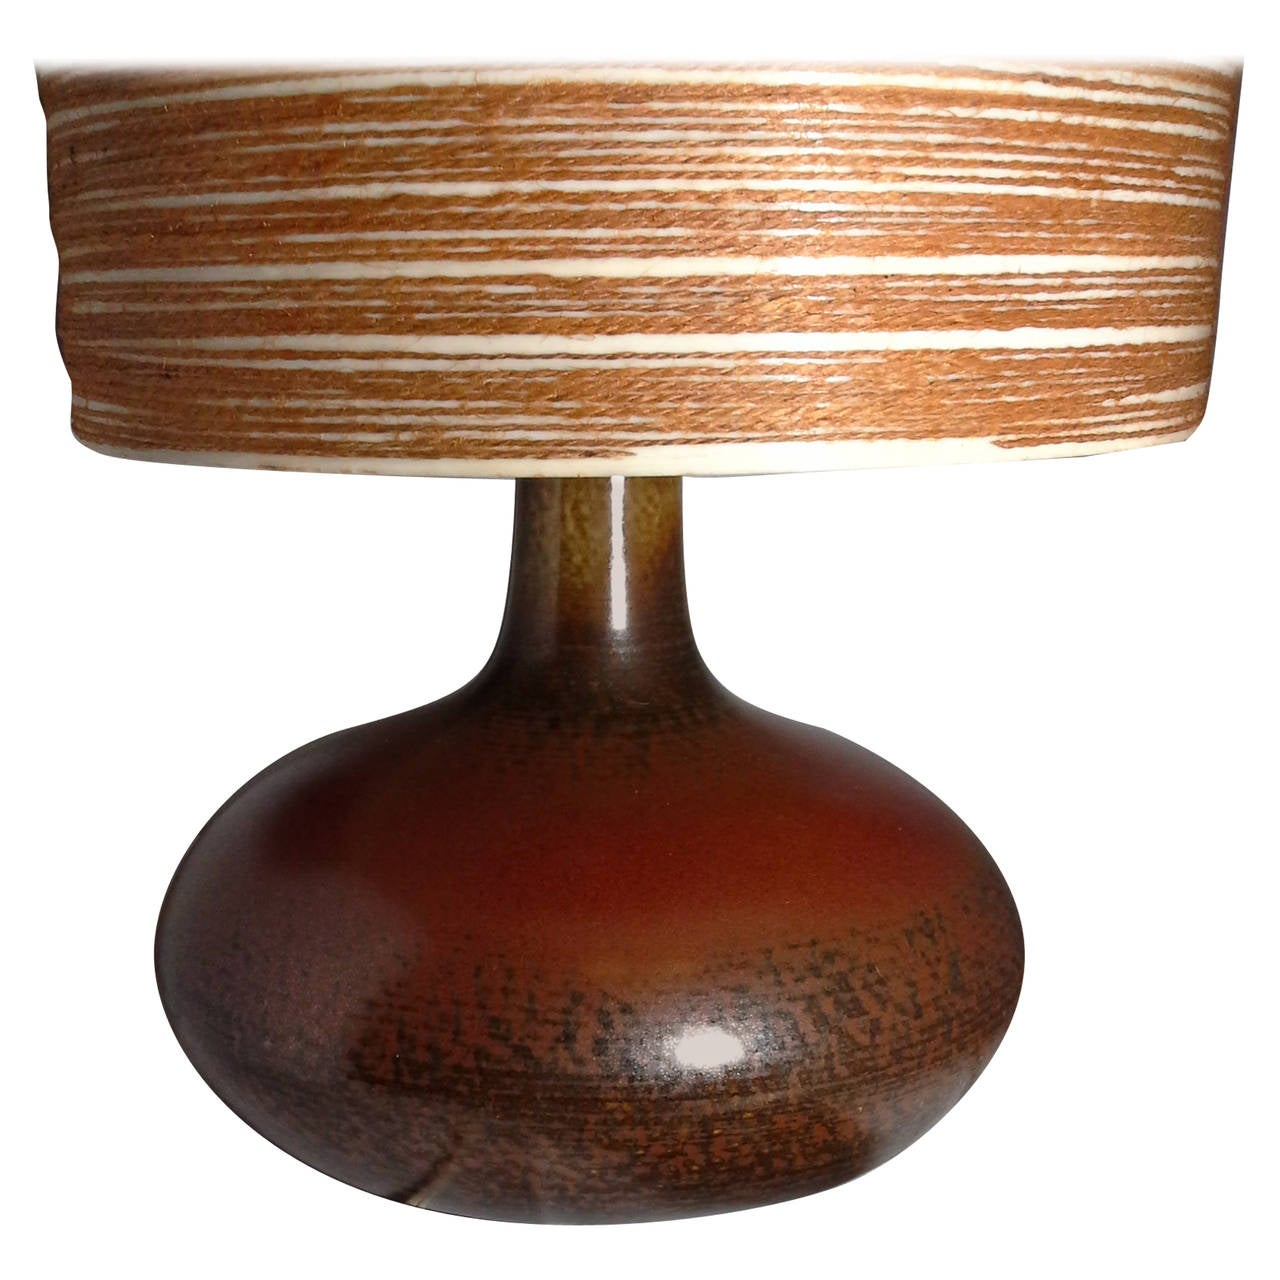 Original Lamps lotte mid-century ceramic table lamp with original shade in a